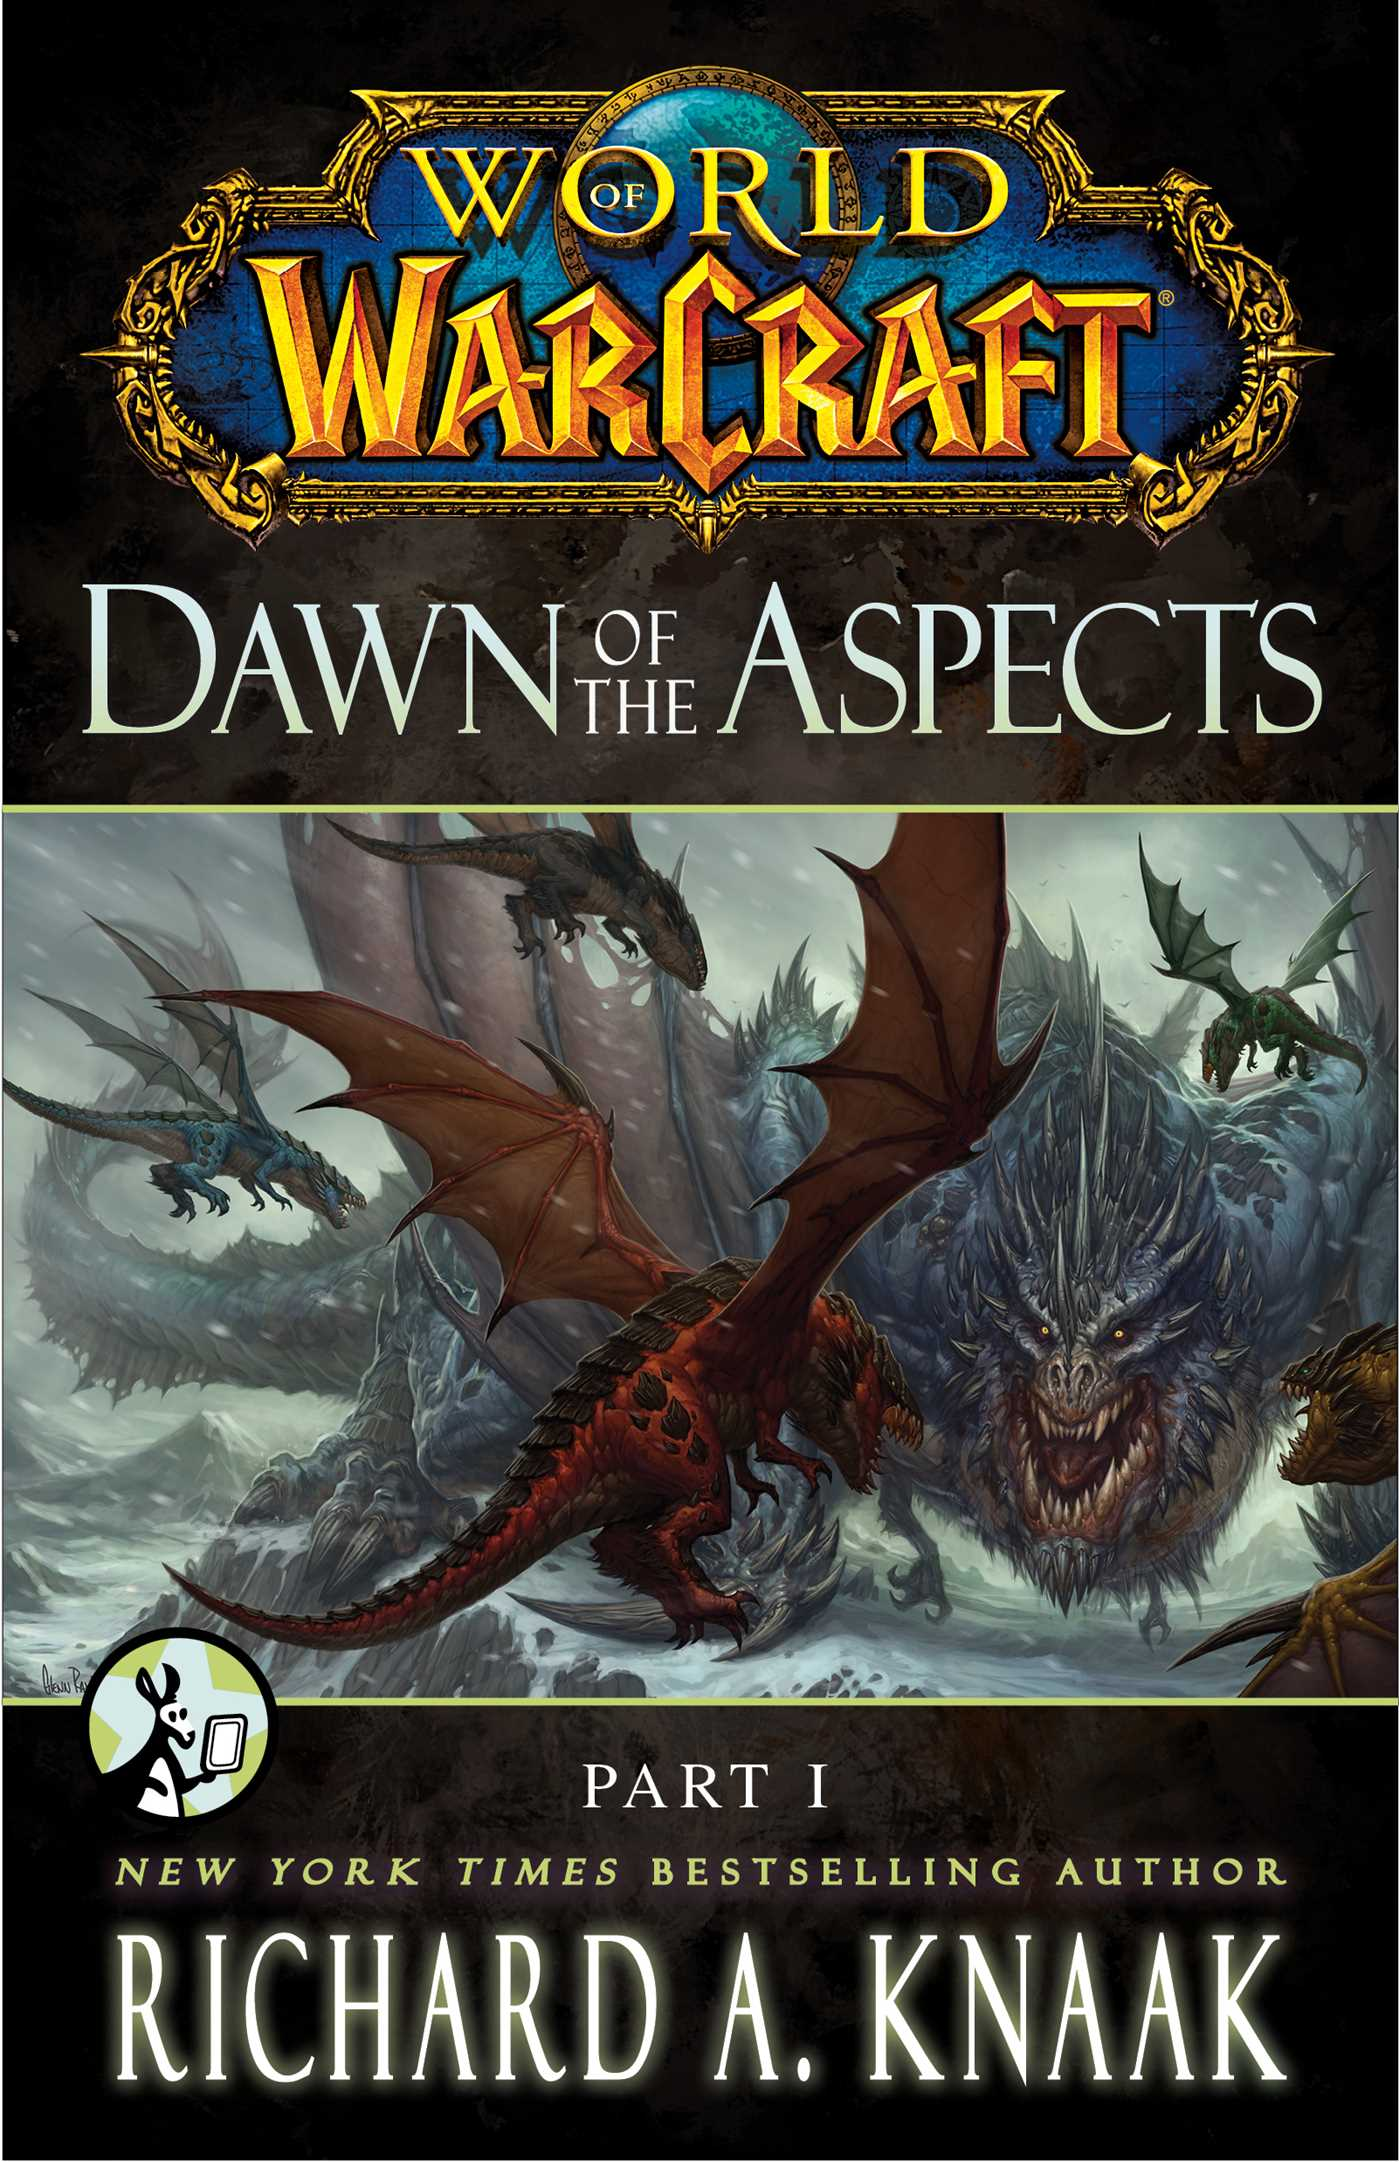 World-of-warcraft-dawn-of-the-aspects-part-i-9781416550693_hr